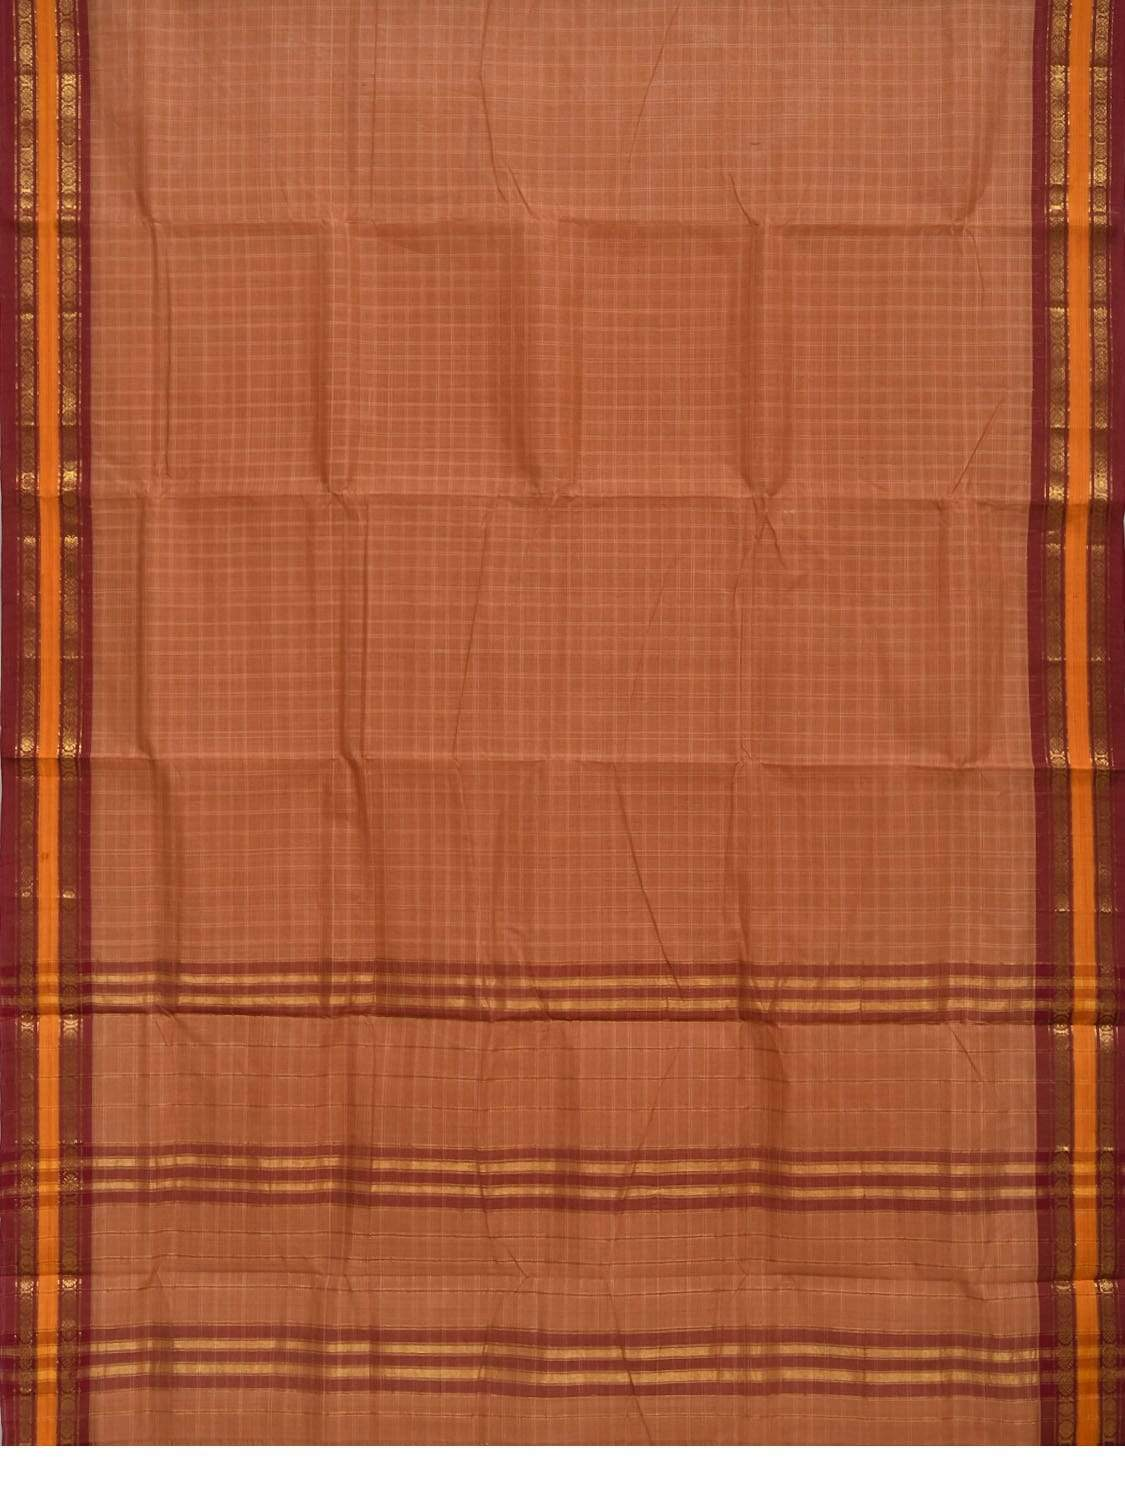 Cream Narayanpet Cotton Handloom Saree with Checks Design No Blouse np0262